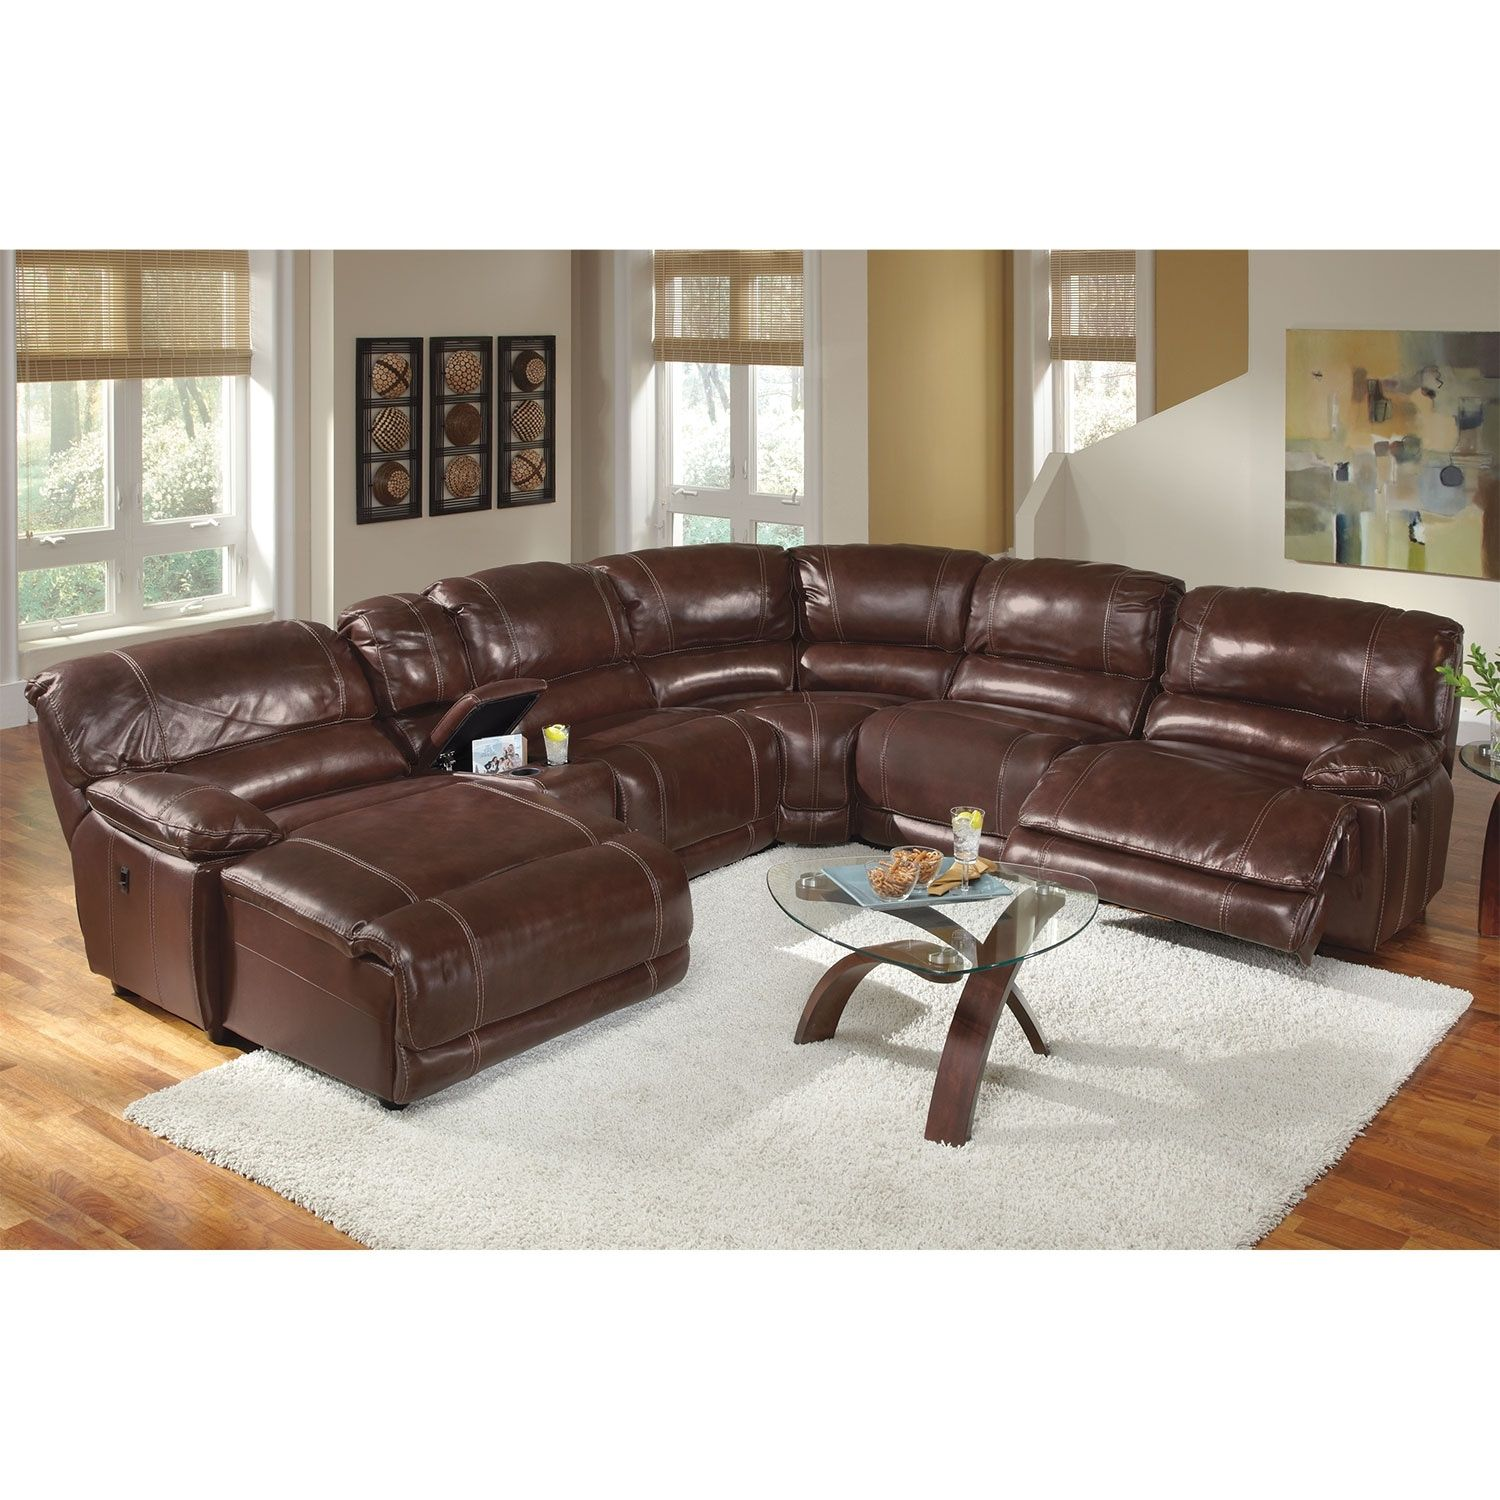 St Malo 6 Piece Power Reclining Sectional With Left Facing Chaise